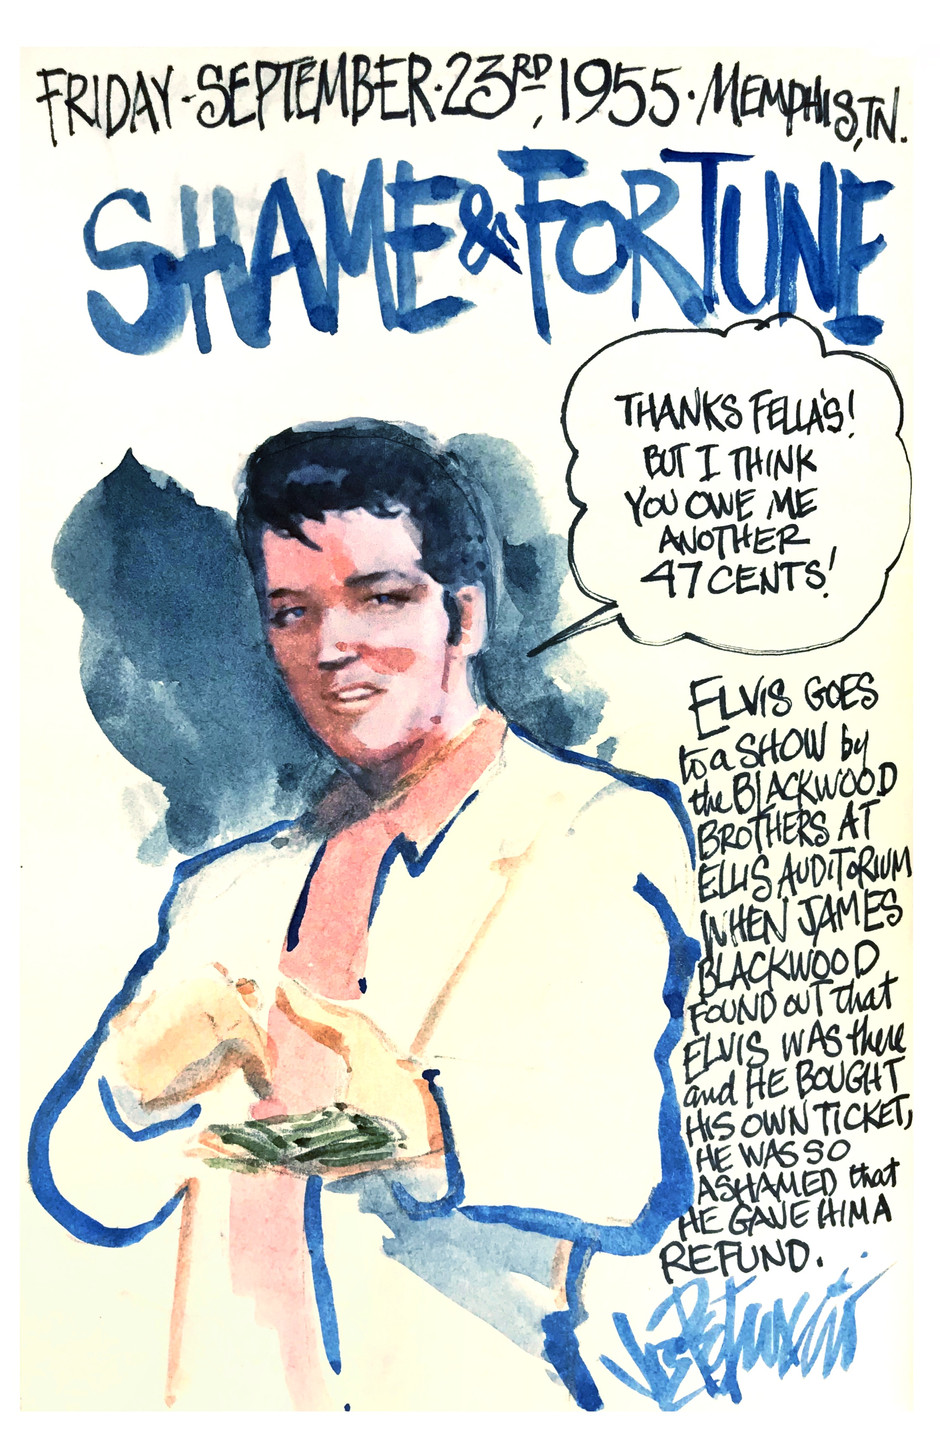 THIS DAY IN ELVIS HISTORY... SHAME and FORTUNE